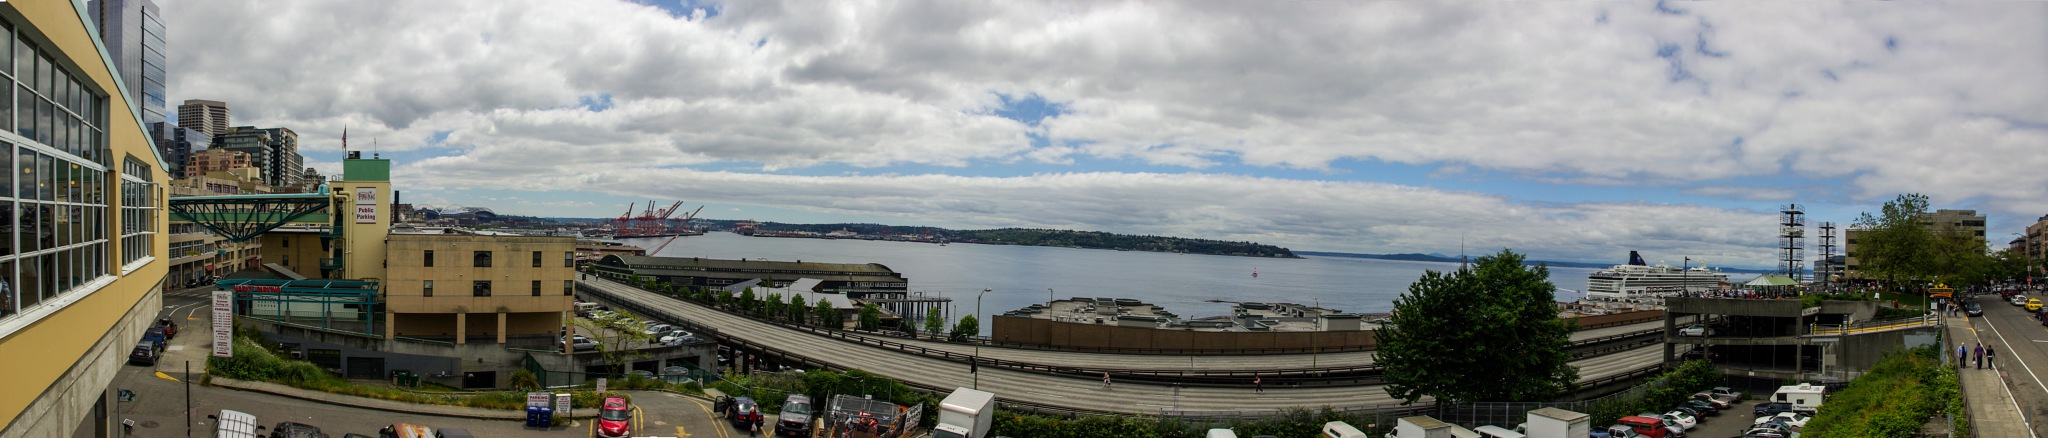 Pike Place by Peter Blaha